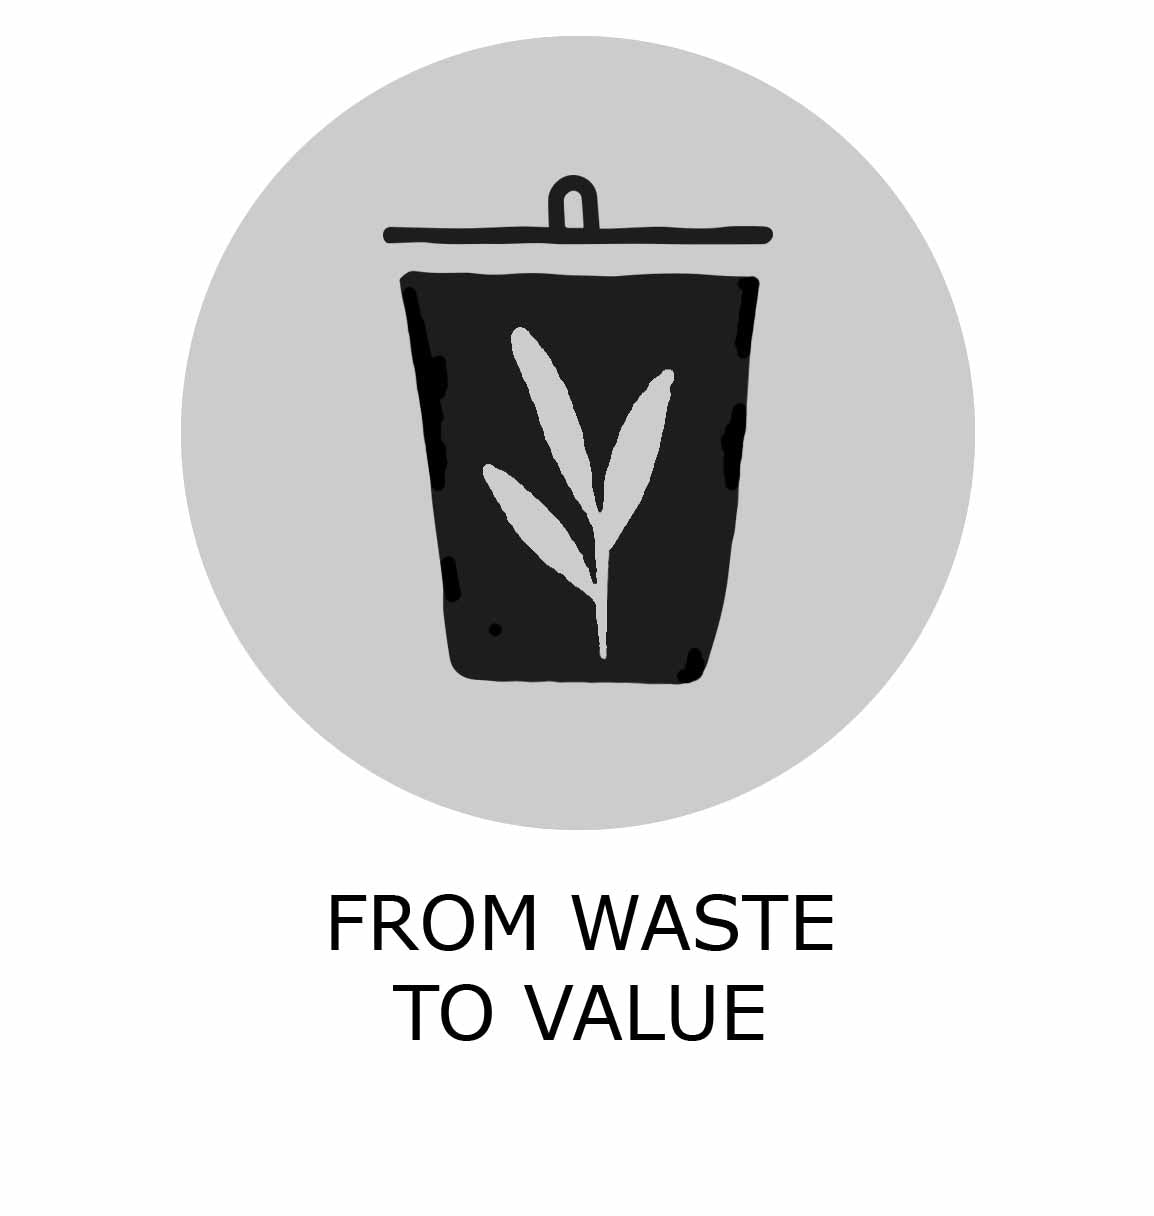 MAVOLU sustainability criteria from waste to value icon